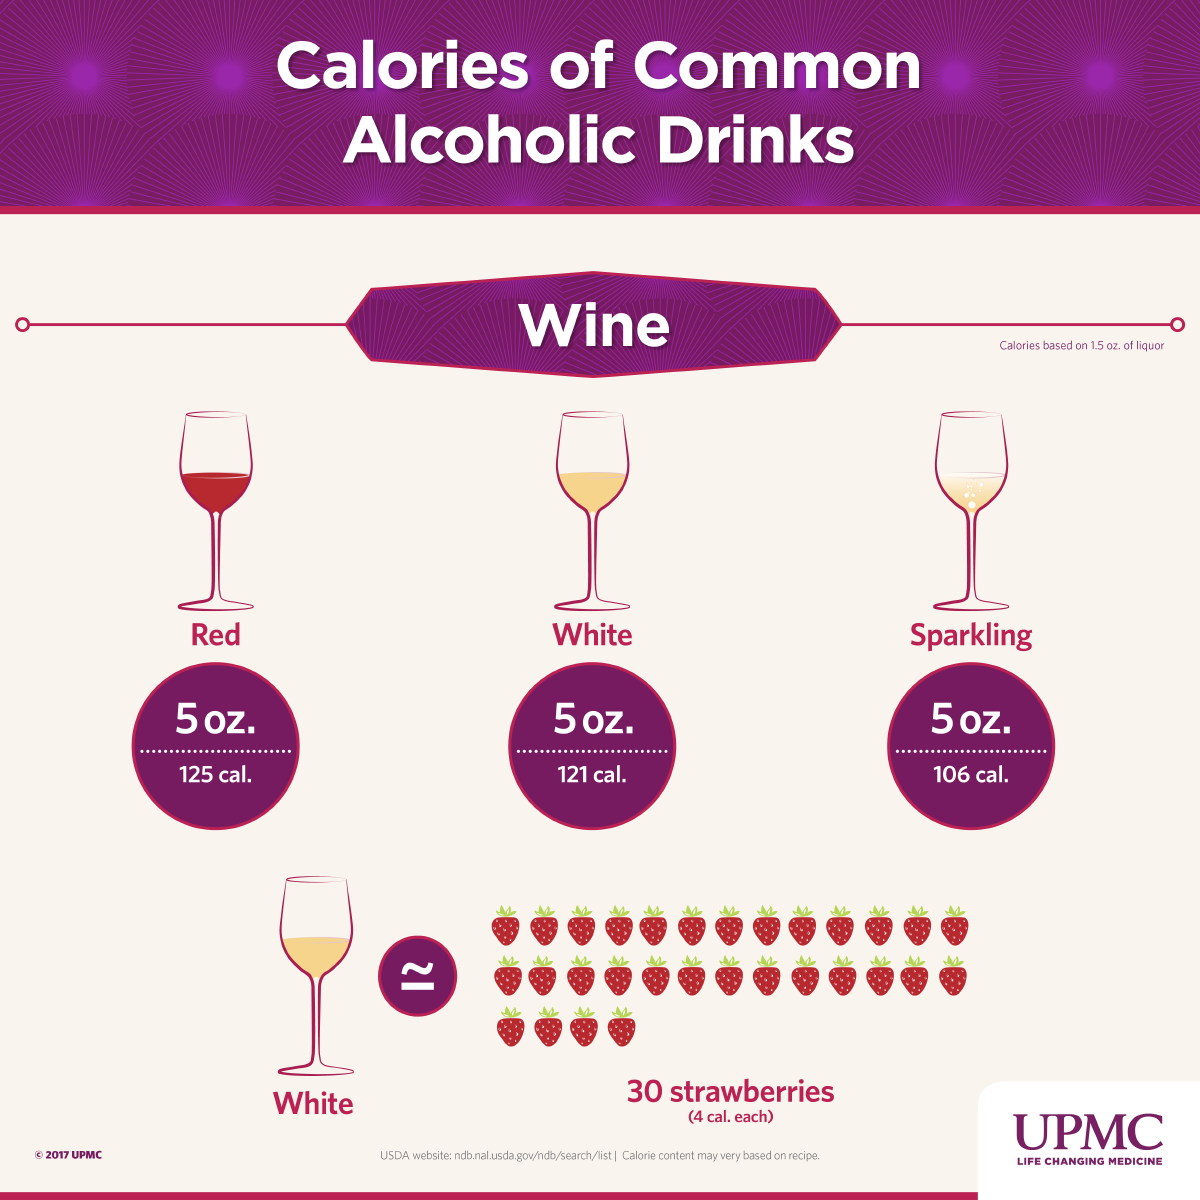 Calories Of Common Alcoholic Drinks